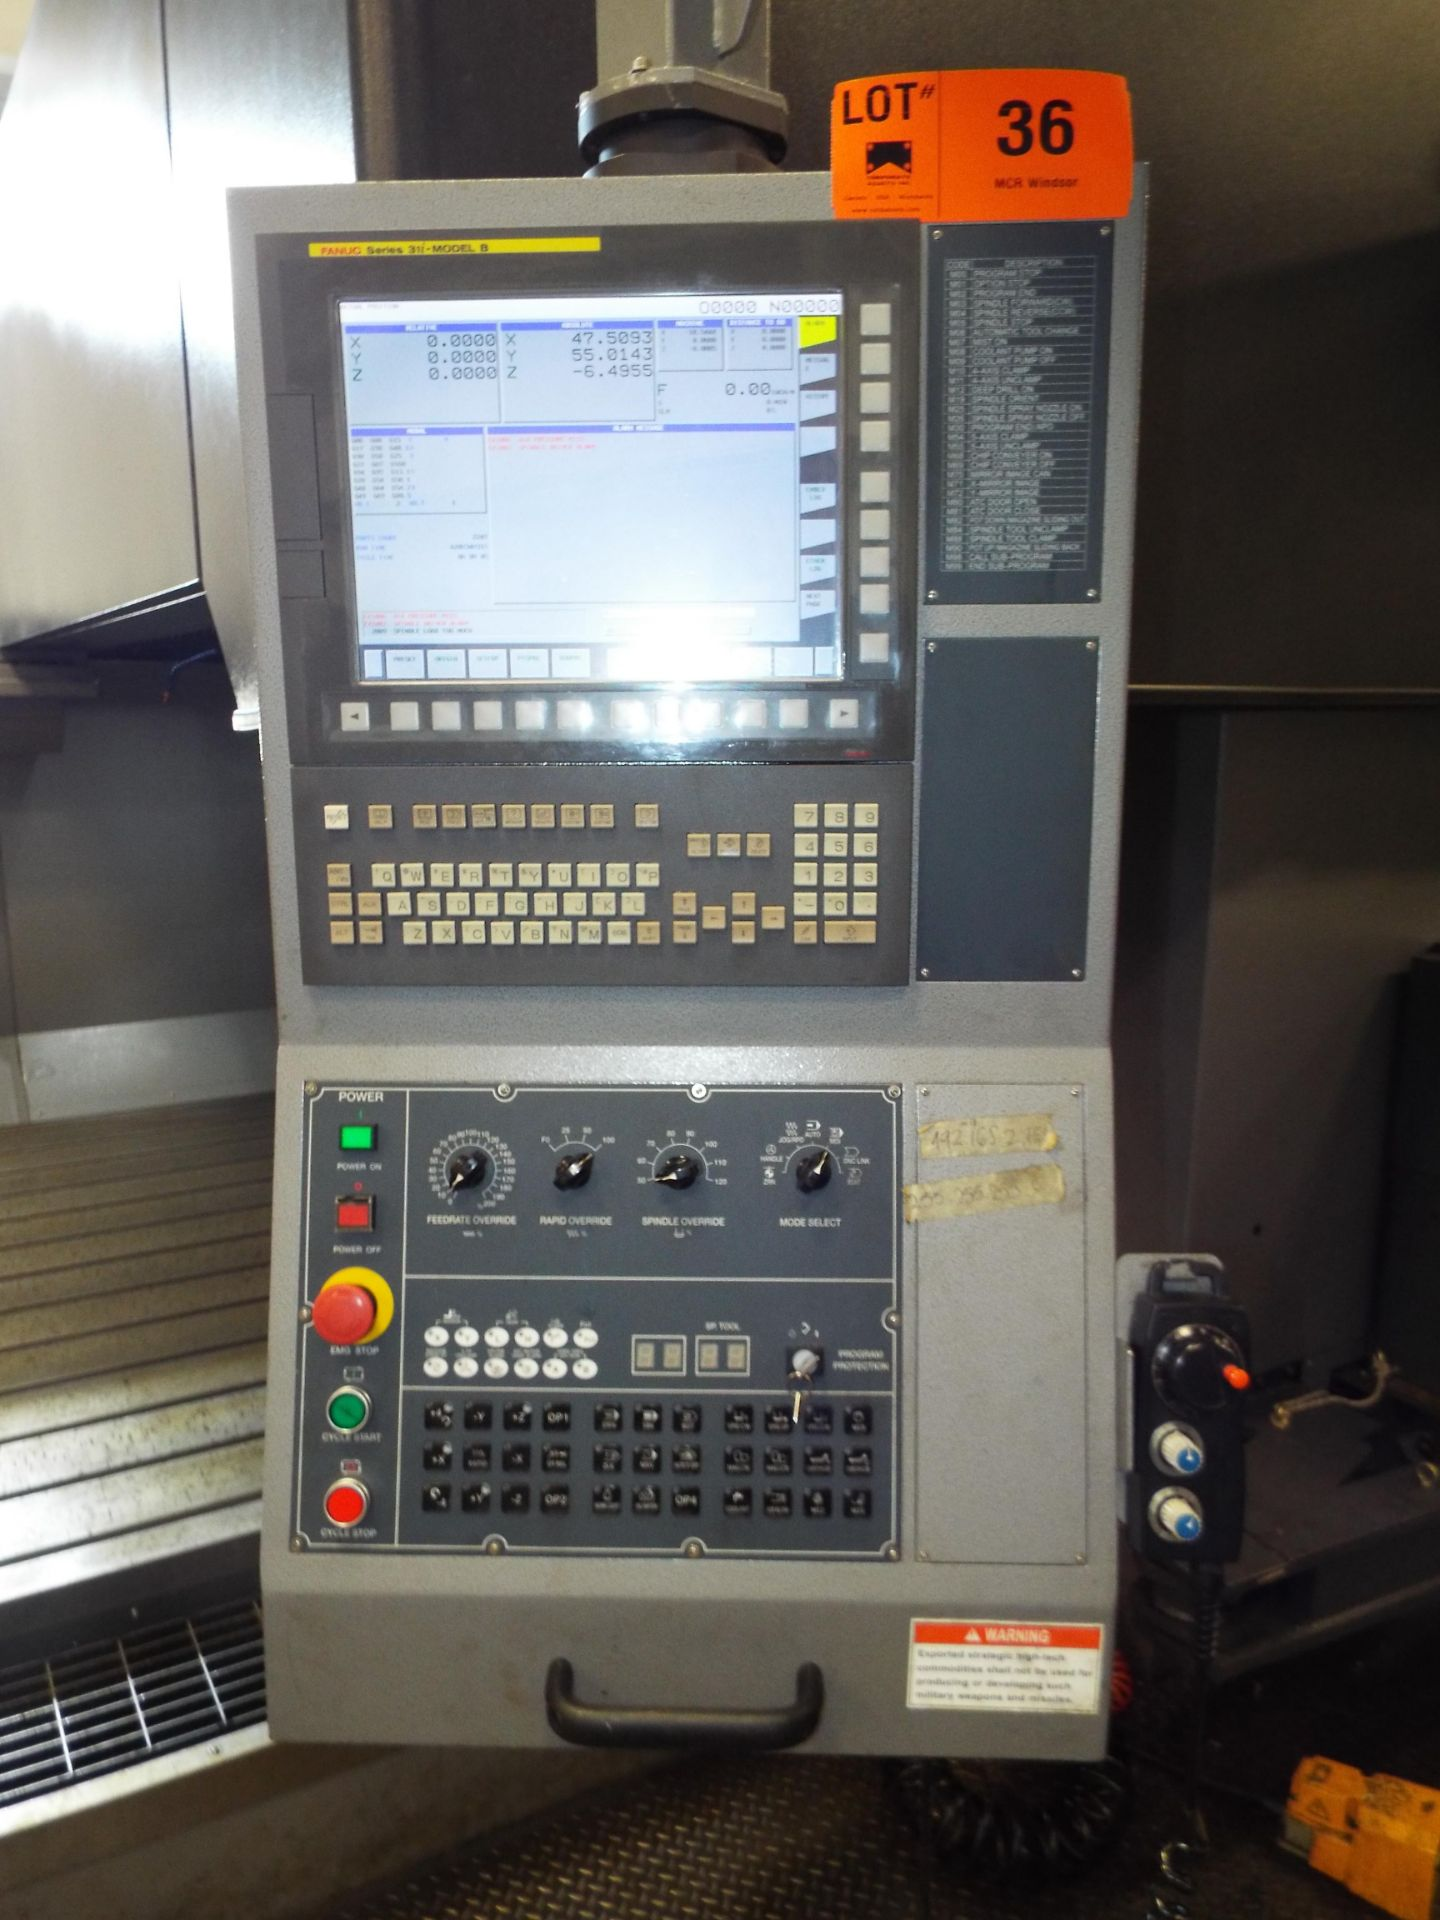 KAFO (INSTALLED NEW IN 2018) BMC-3127 CNC DOUBLE COLUMN VERTICAL MACHINING CENTER WITH FANUC - Image 11 of 13